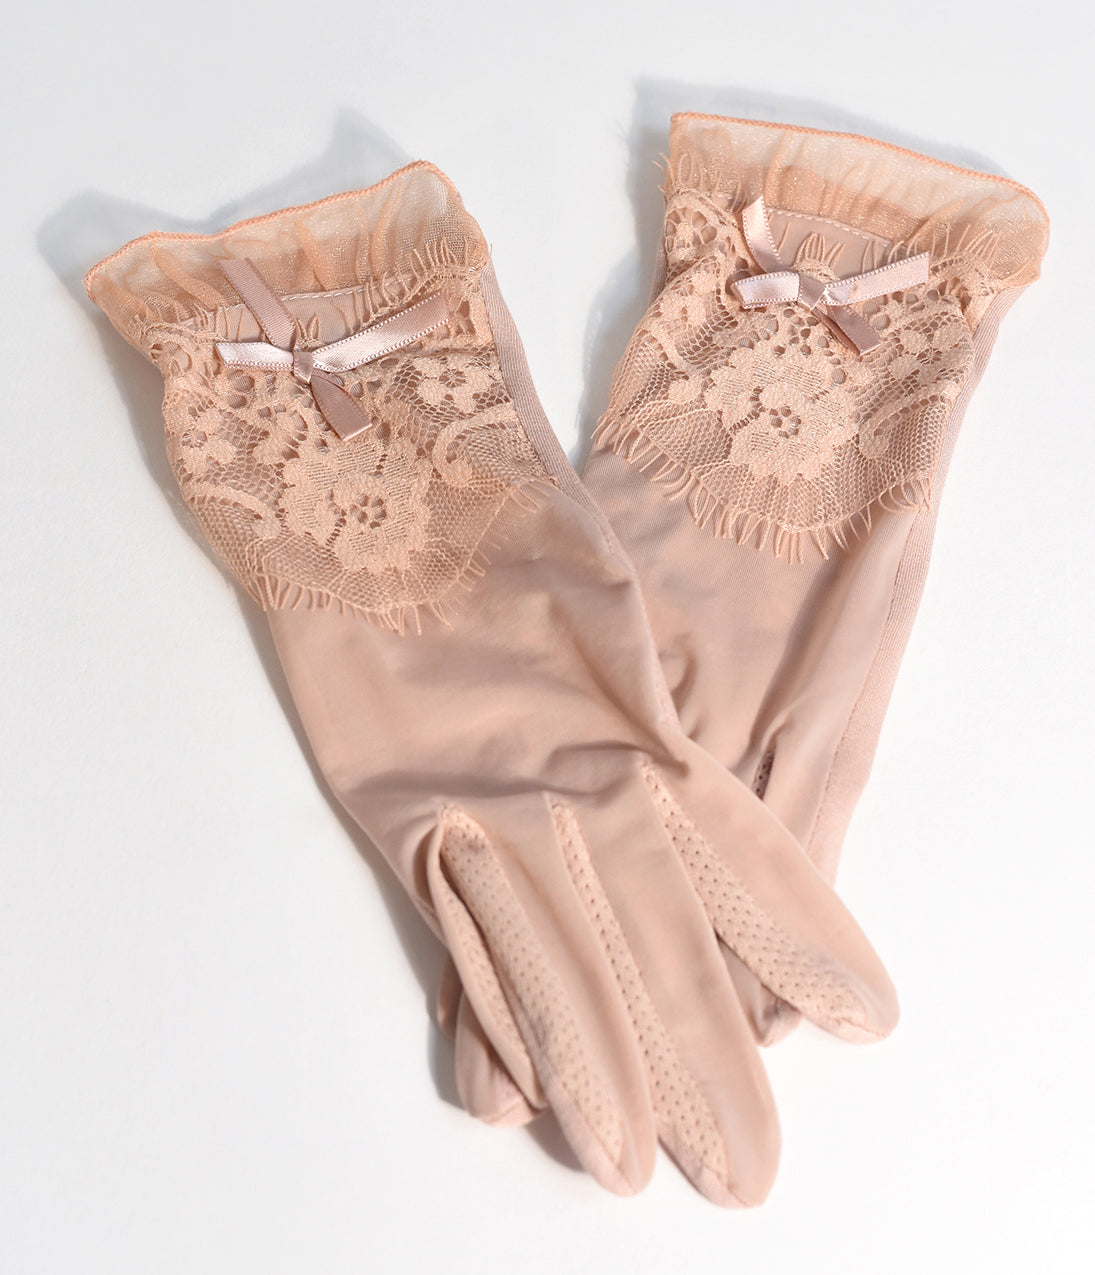 Victorian Gloves | Victorian Accessories Dusty Pink Vintage Lace Sheer Wrist Gloves $18.00 AT vintagedancer.com